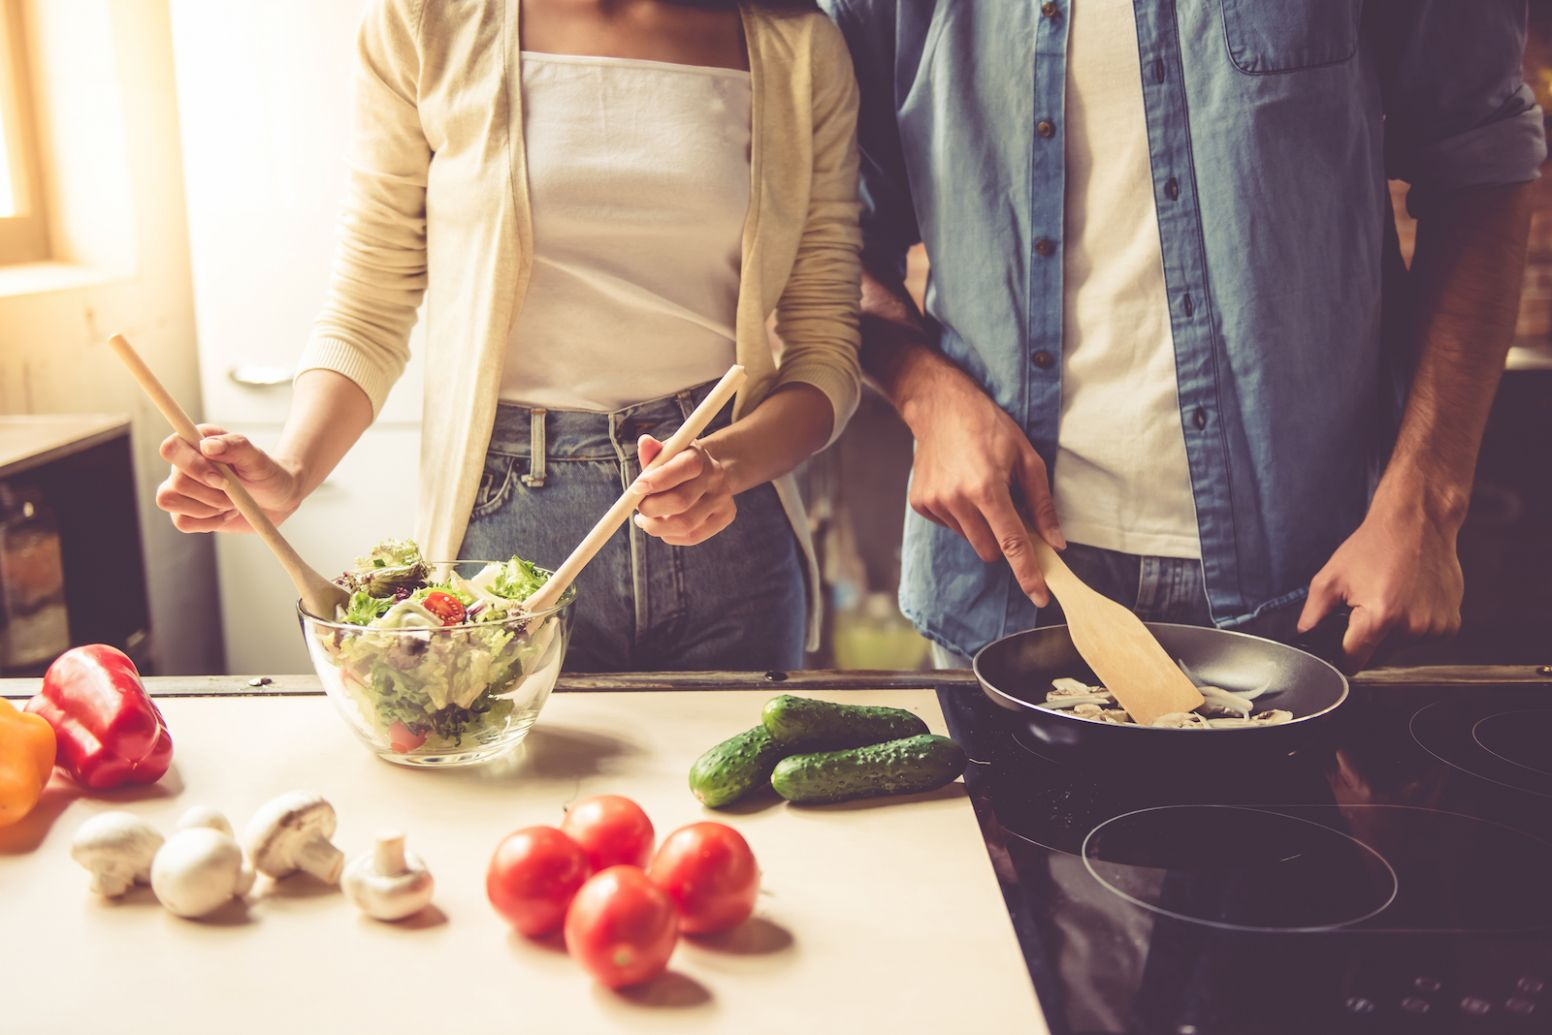 11 YouTube Channels to Seriously Inspire Your Meal Prep - Food Recipes Youtube Channels